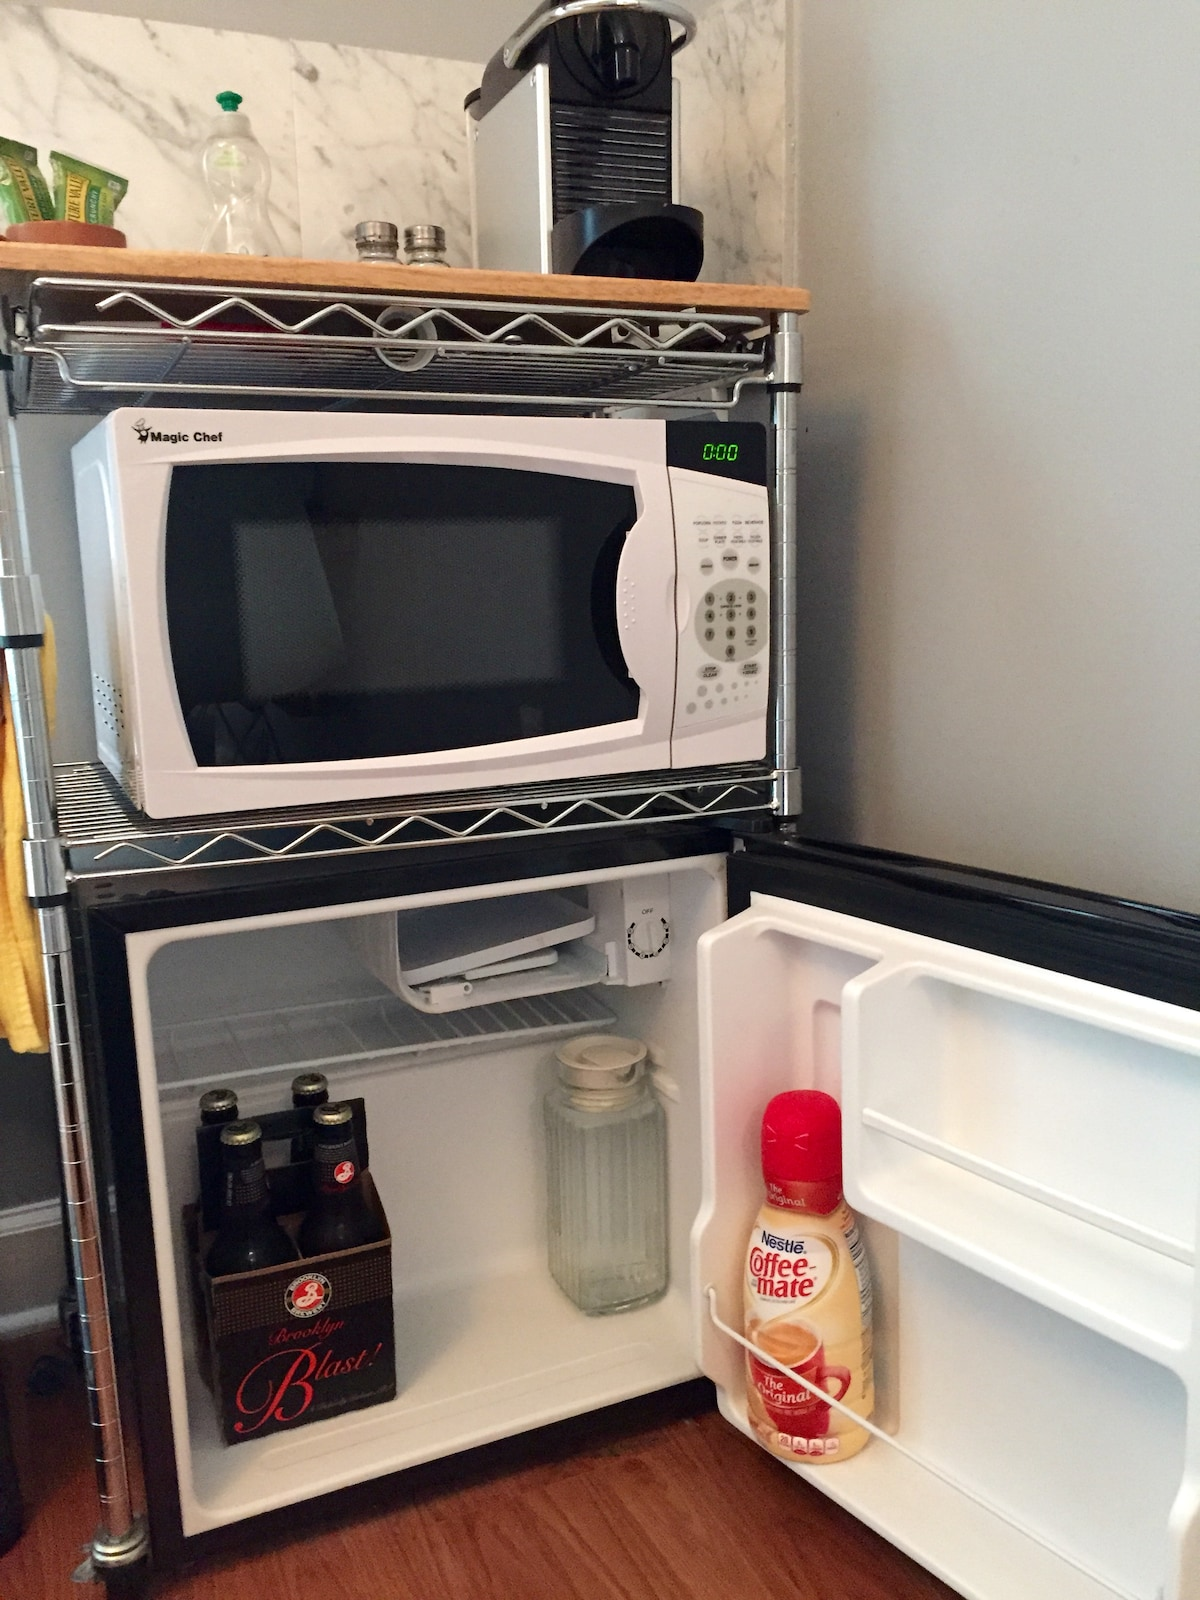 Mini fridge with a few essentials included.